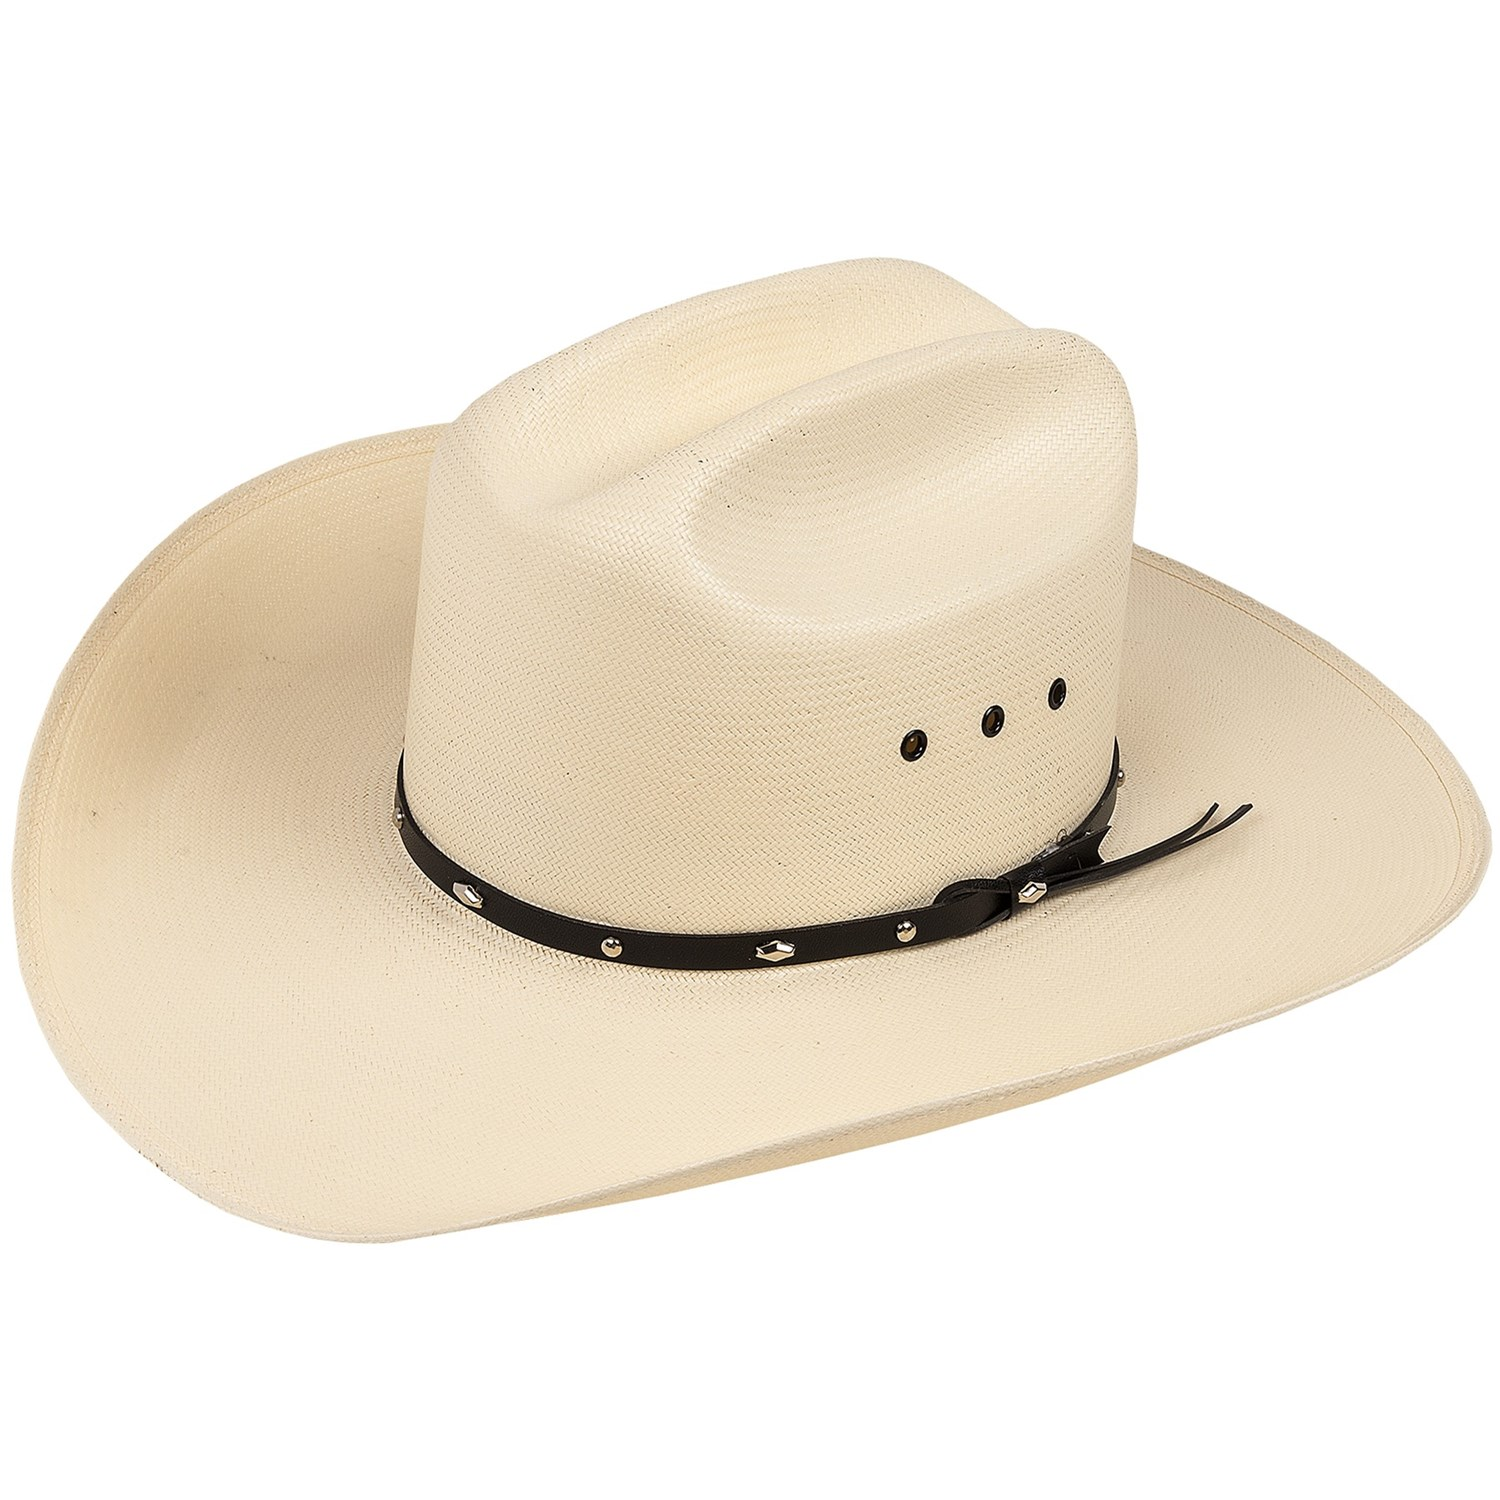 resistol-oval-cowboy-hat-shantung-straw-cattleman-crown-for-men-and-women-in-natural~p~7780t_01~1500.3